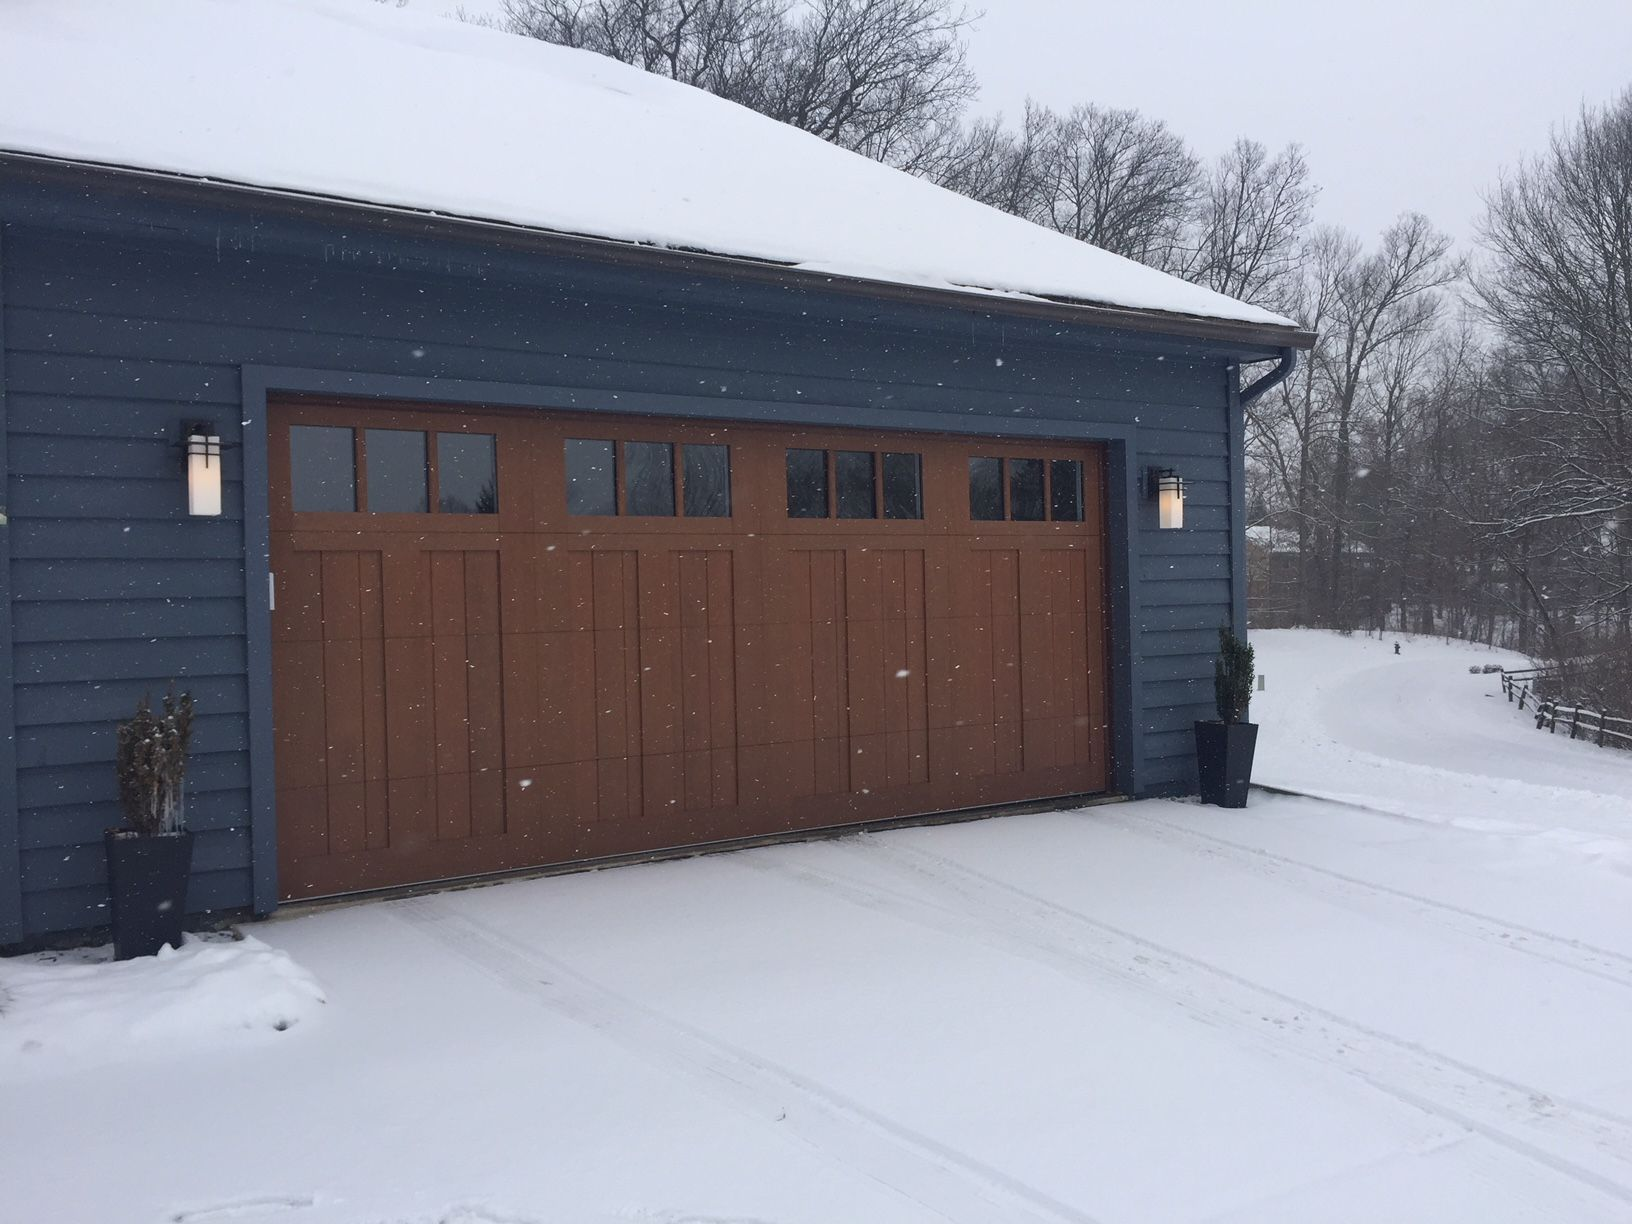 how to open electric garage door without power from outside